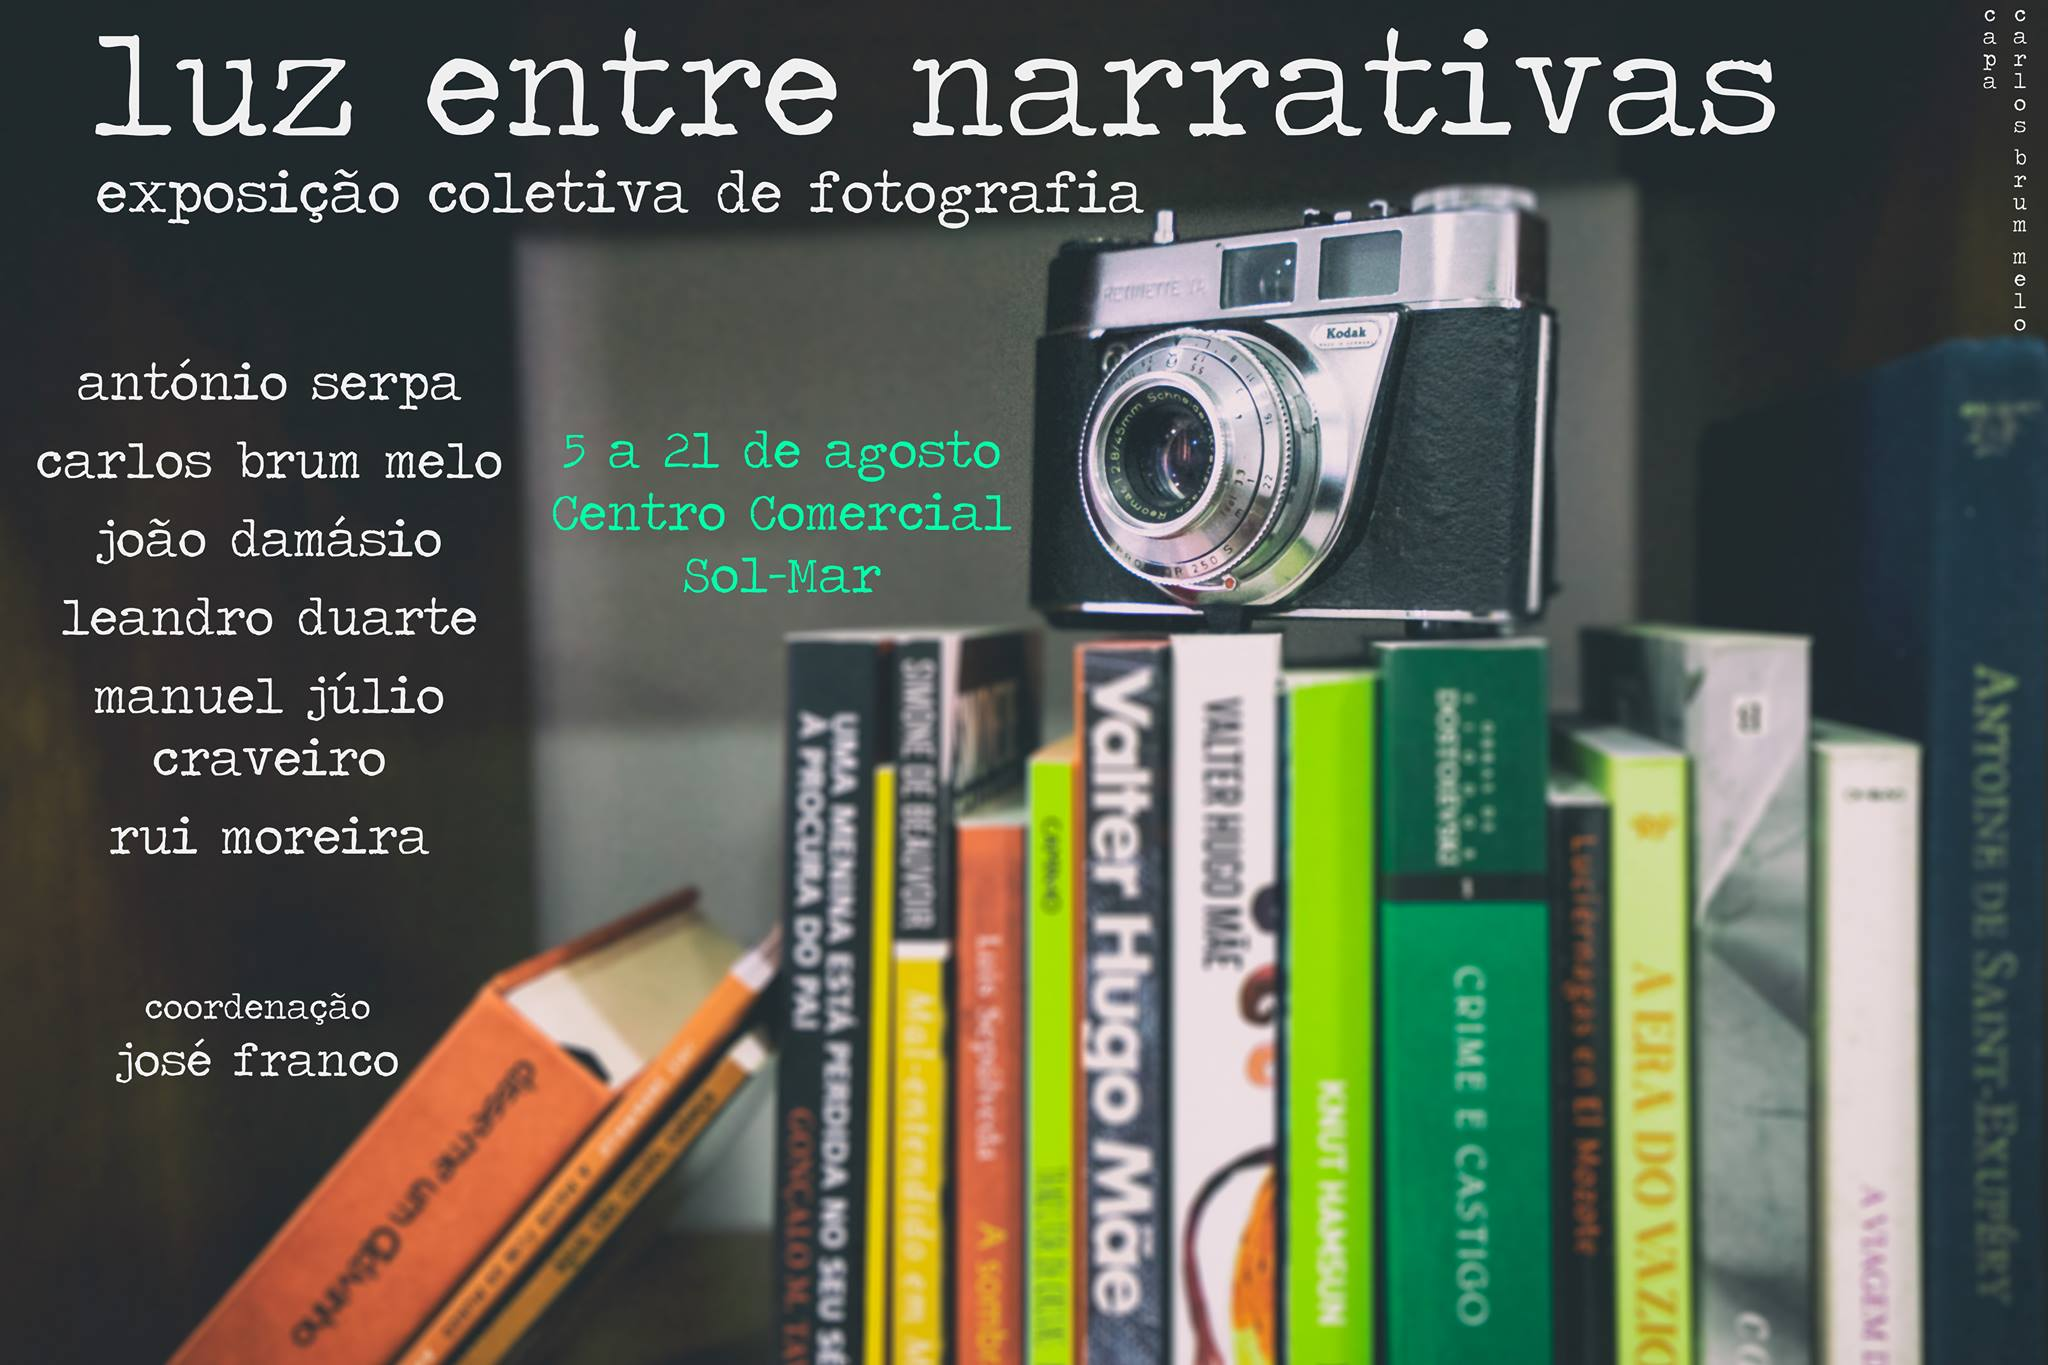 luz entre narrativas (2016)